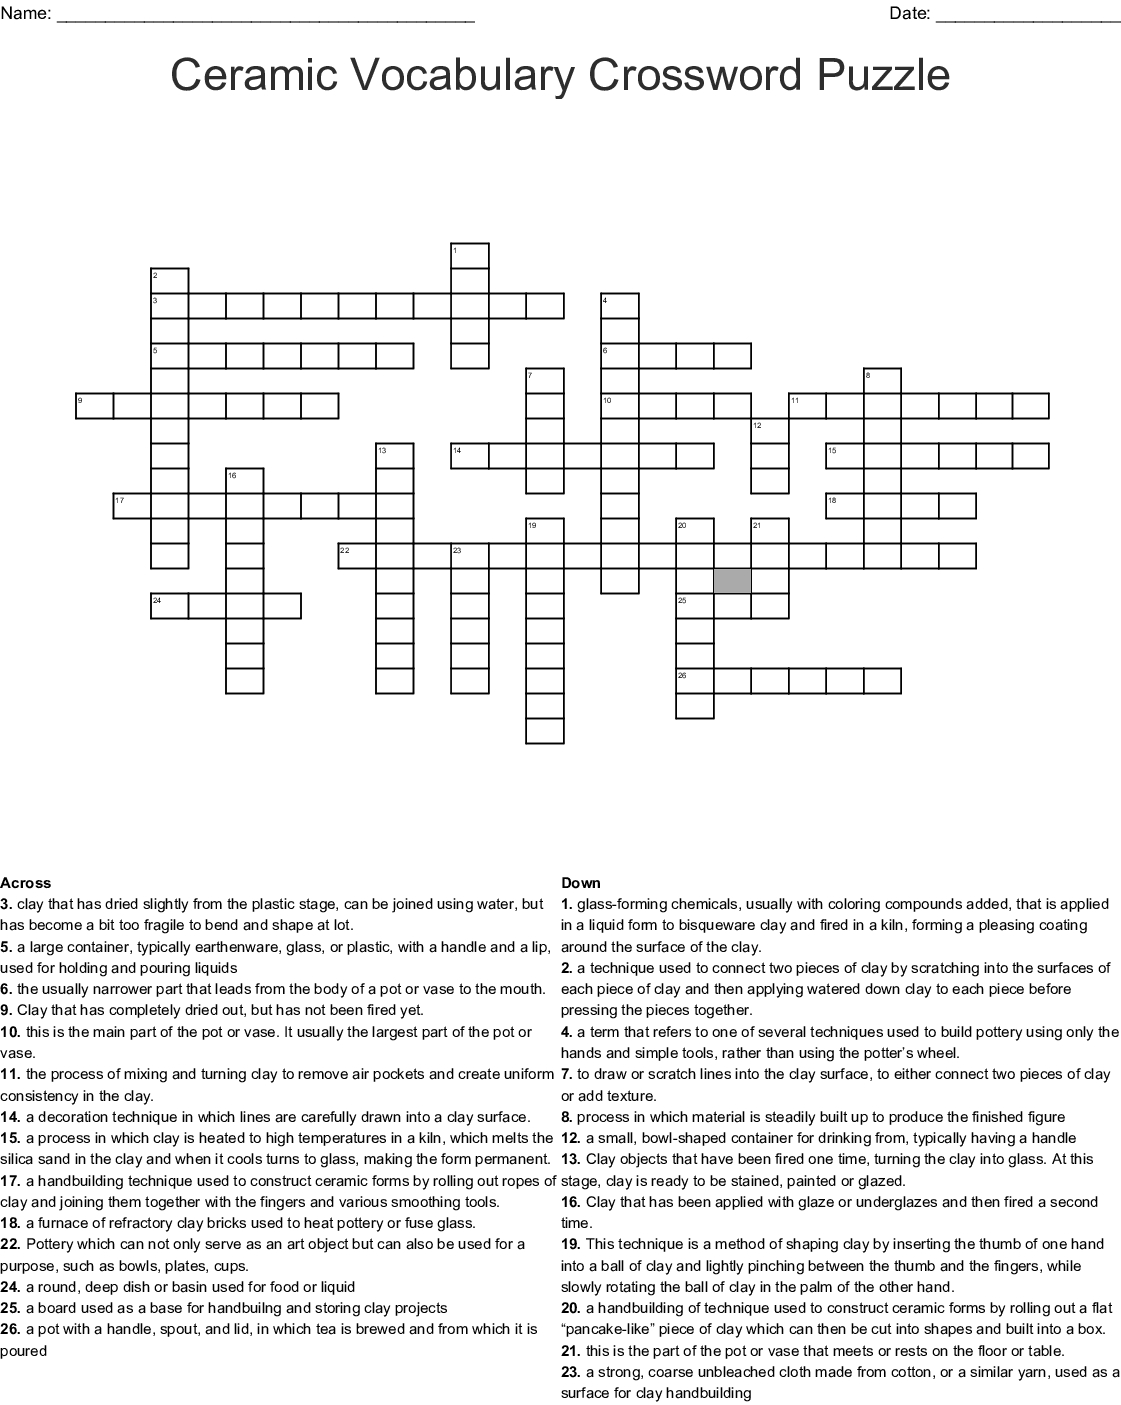 Ceramic Vocabulary Crossword Puzzle Crossword - Wordmint - Printable Vocabulary Crossword Puzzles